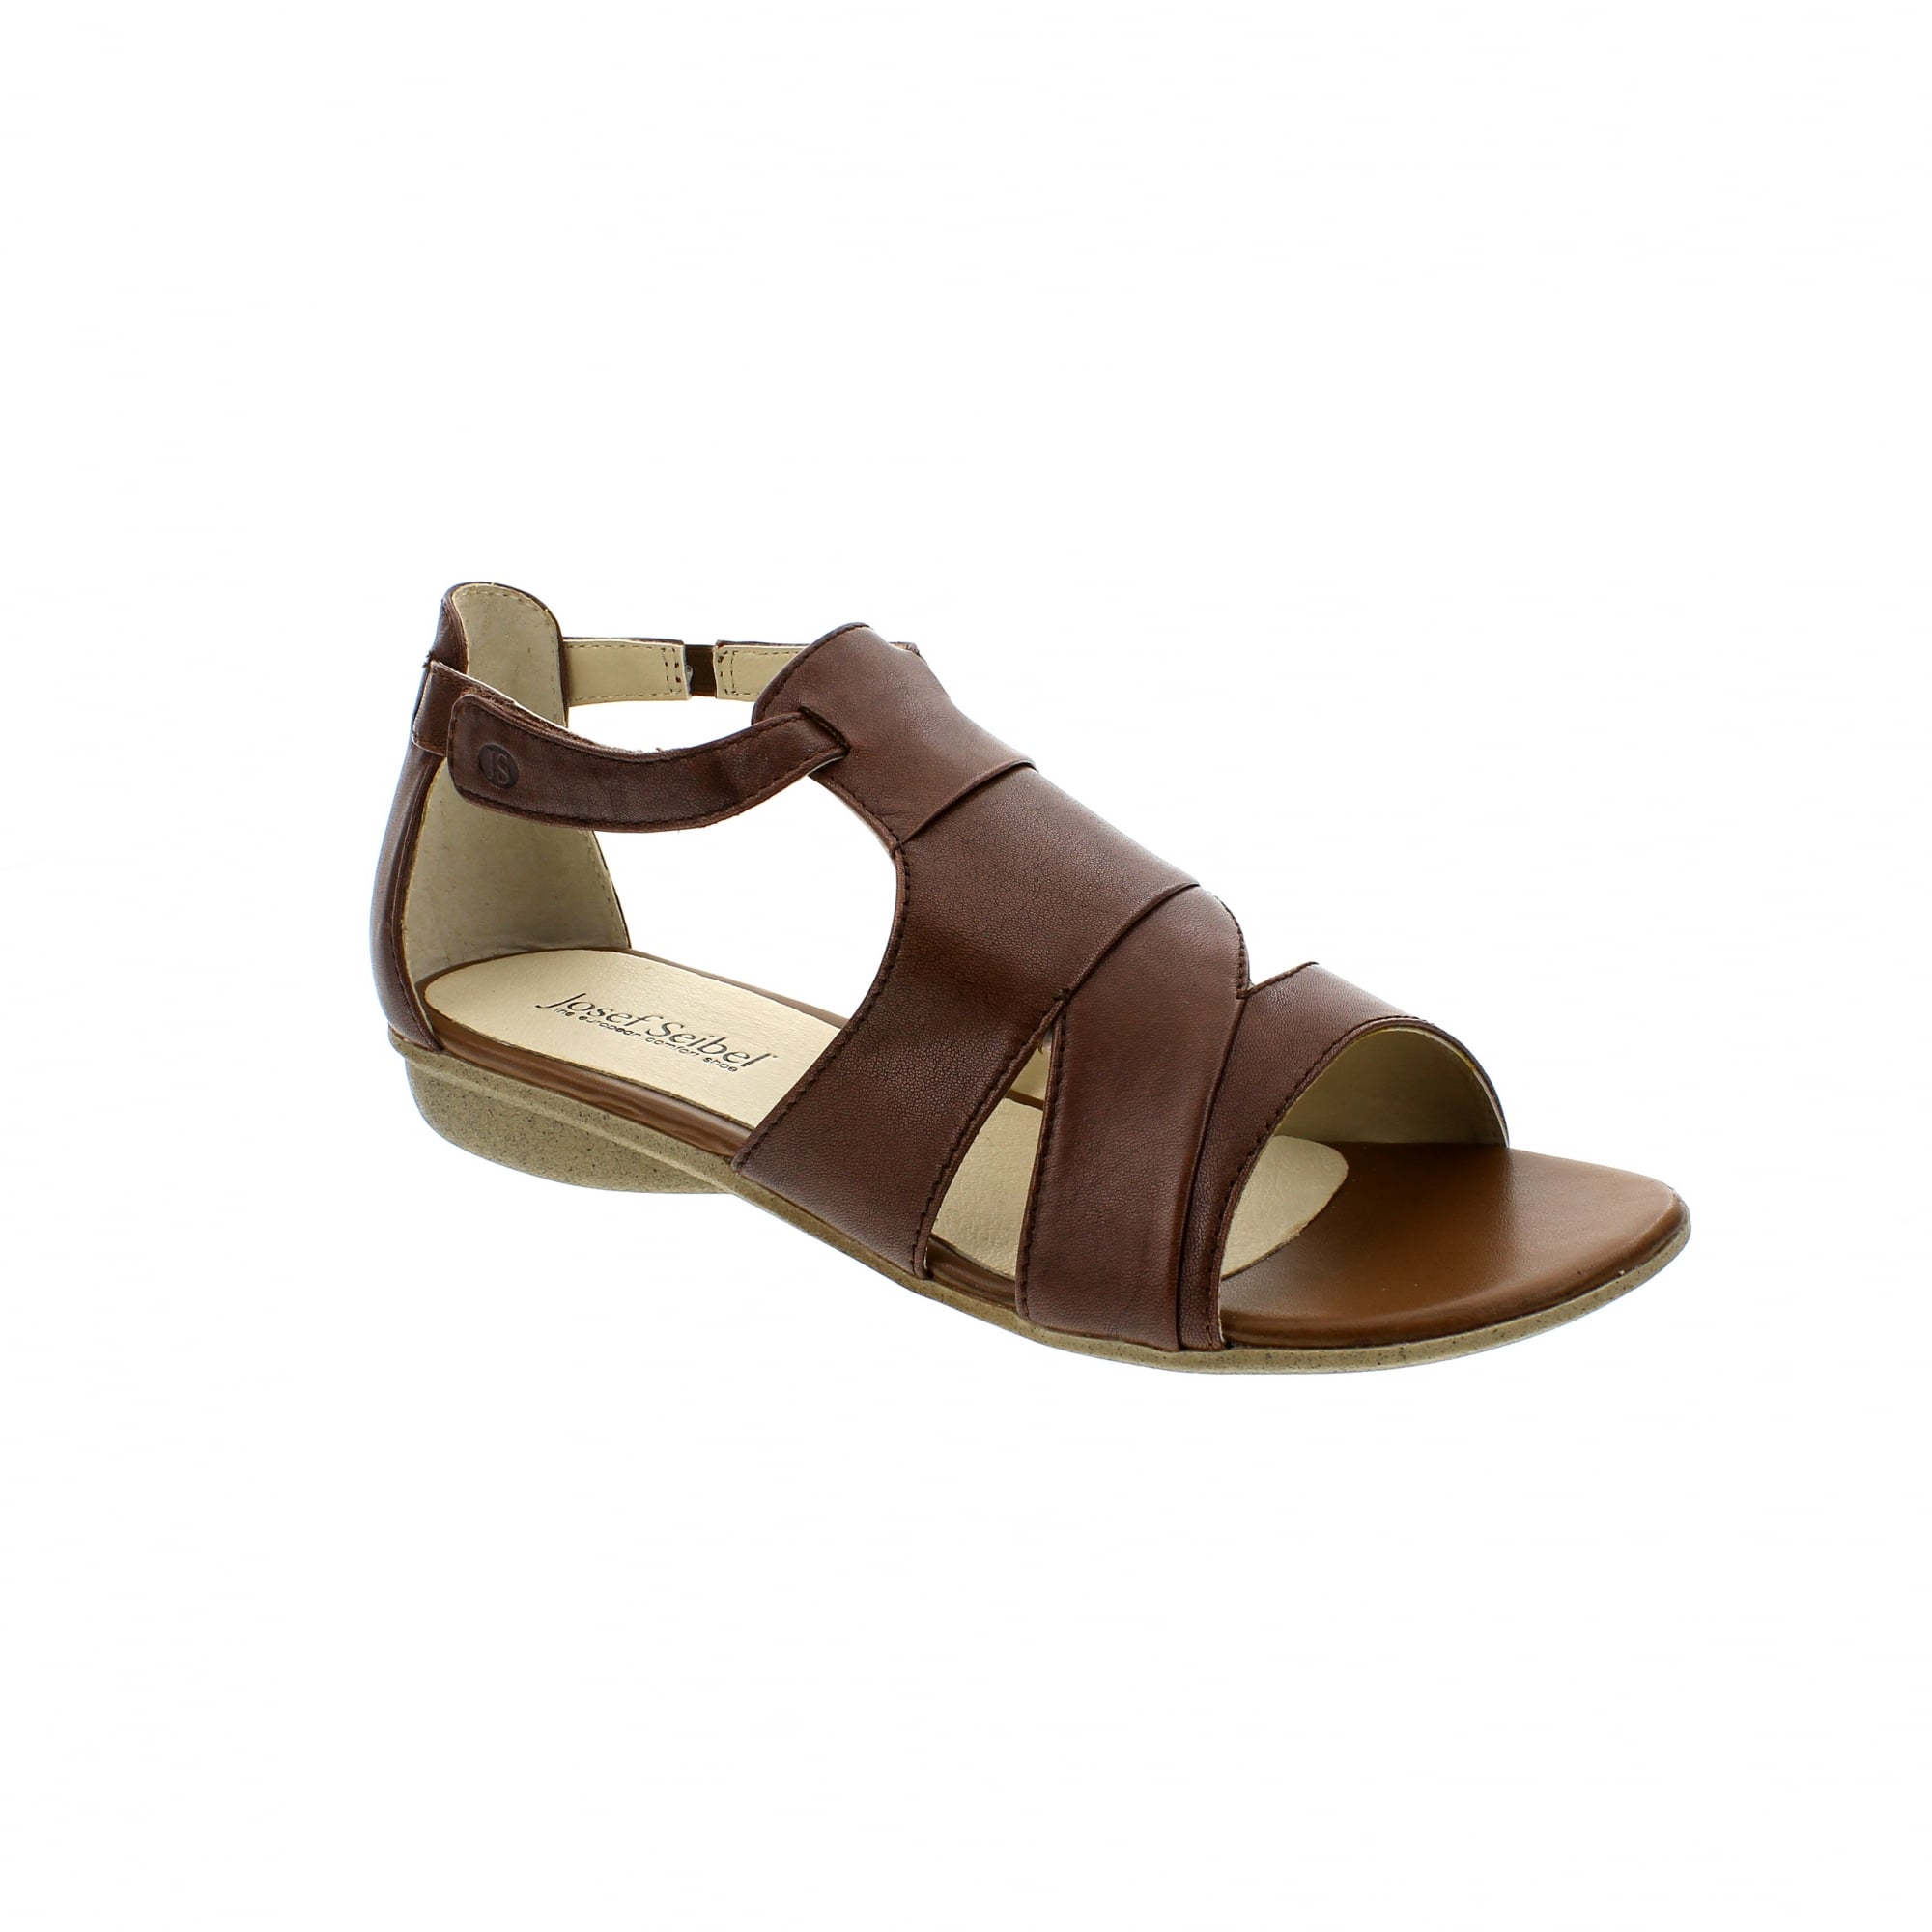 a4b5a4bf20ca Josef Seibel Fabia 03 87503-971340 Tan Womens Sandals